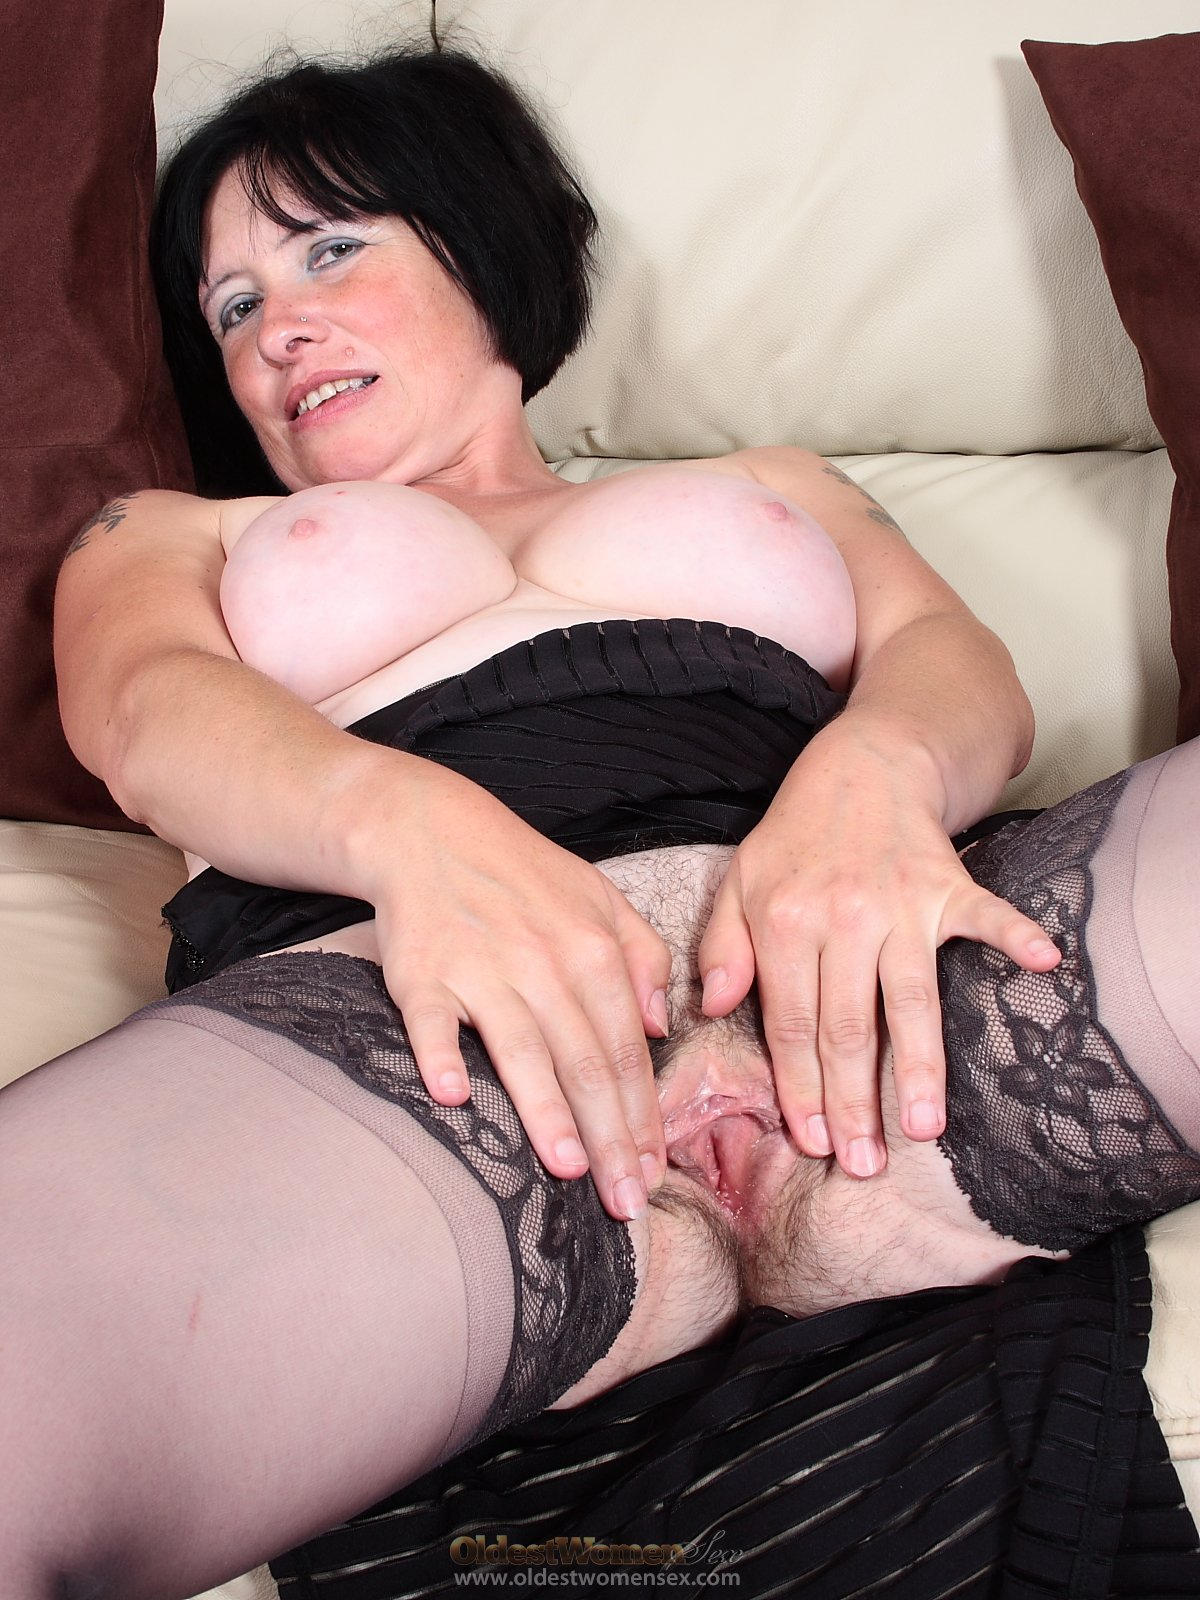 cute old woman in black dress shows hairy pussy